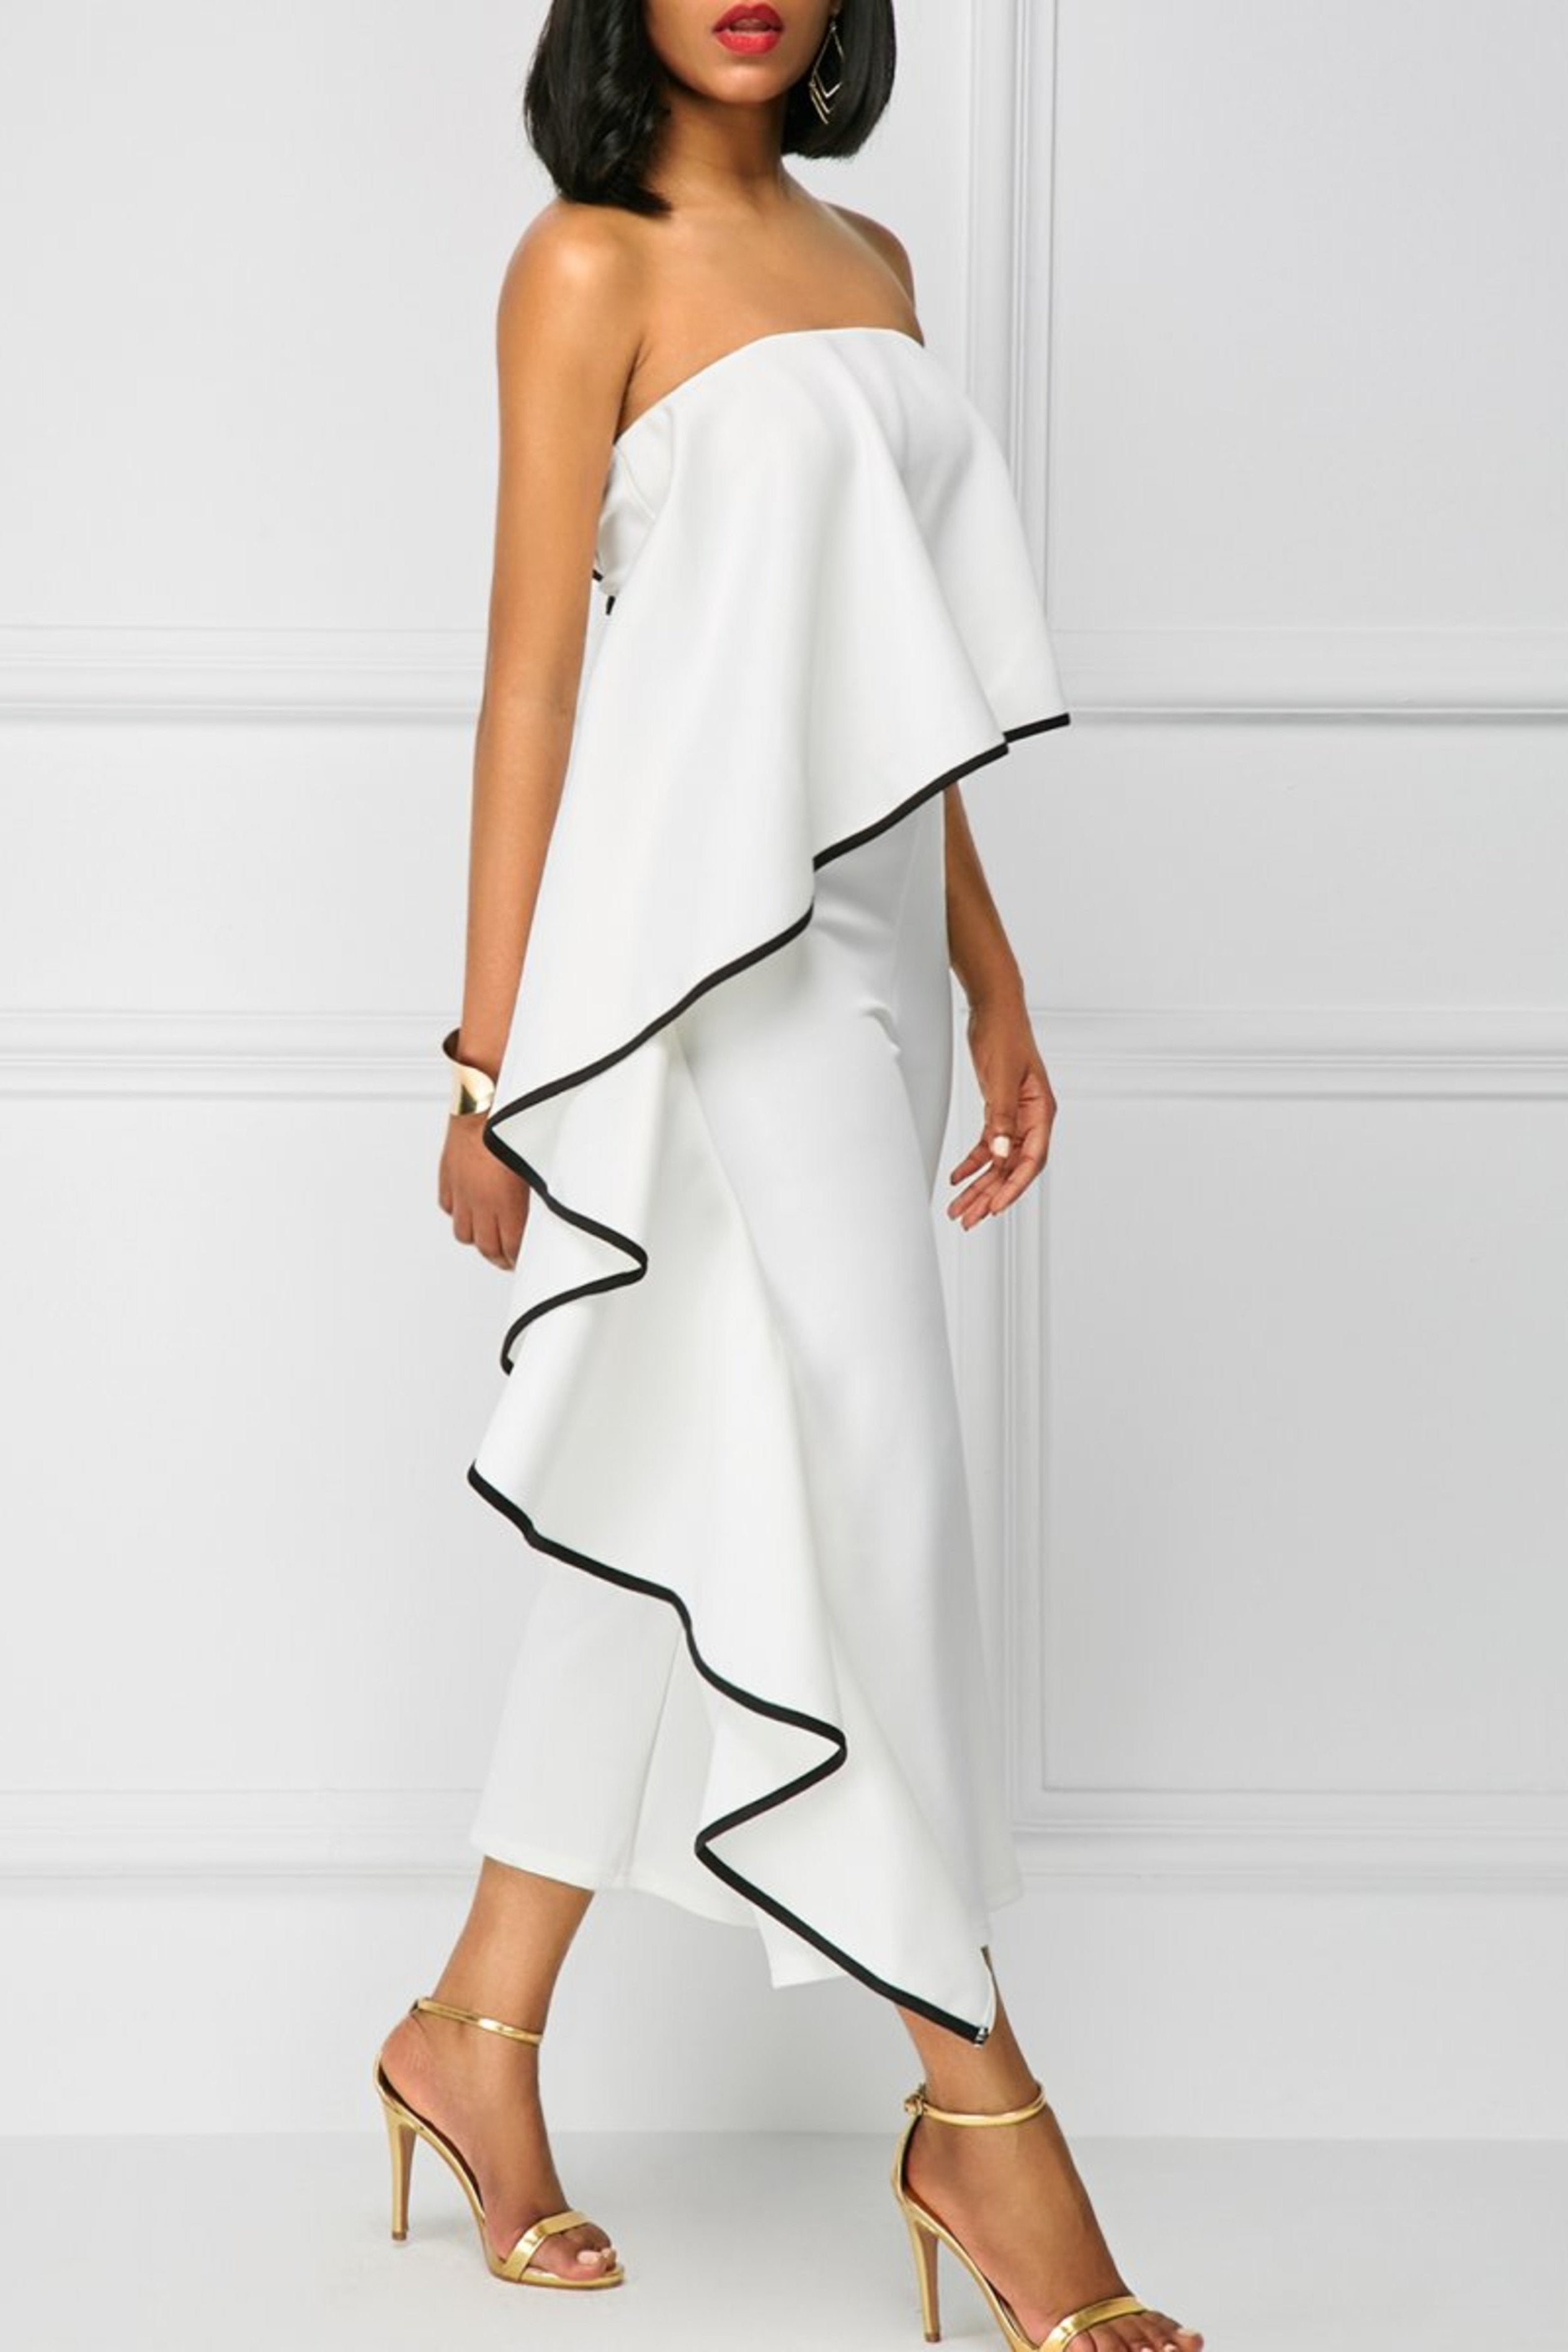 WHITE BANDEAU JUMPSUIT WITH BLACK TRIM, Jumpsuit & playsuit, Luna Soul, Luna Soul